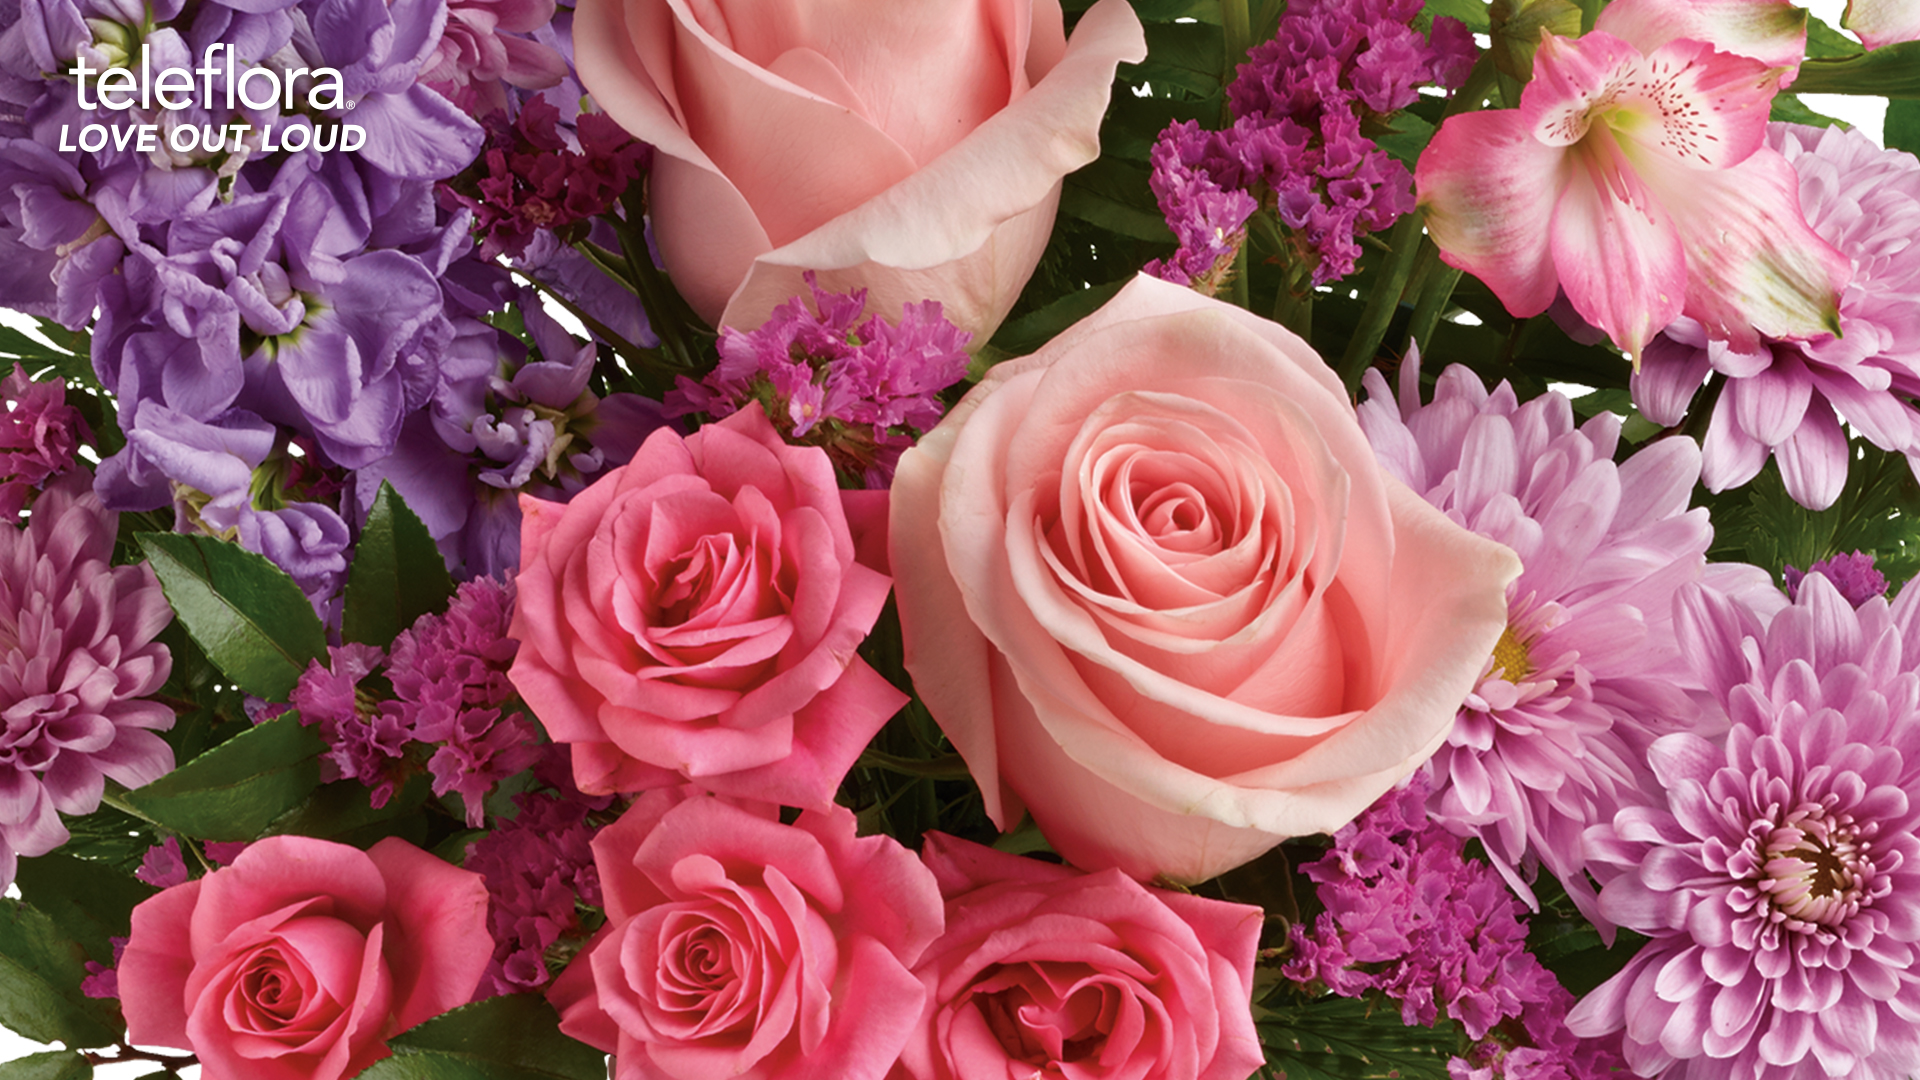 background of light and hot pink roses